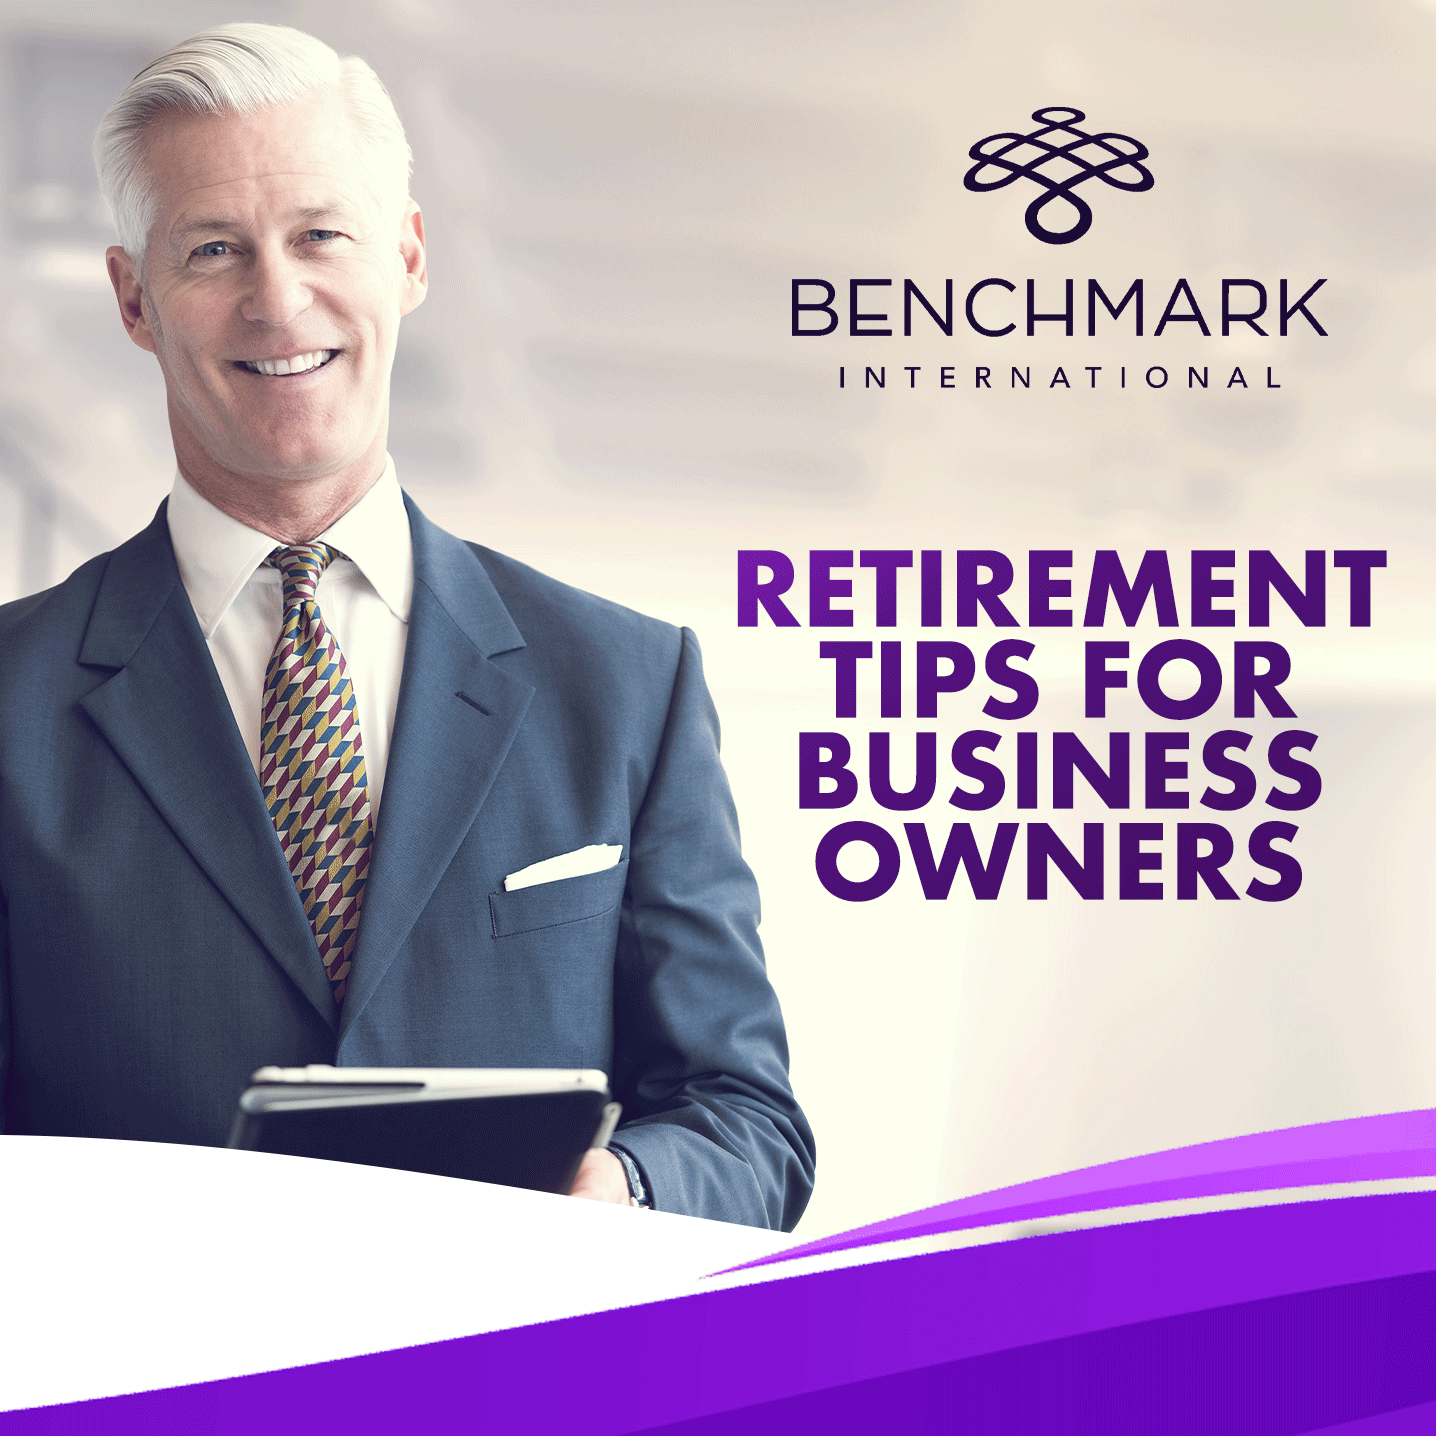 Retirement-Tips-for-Business-Owners-Social